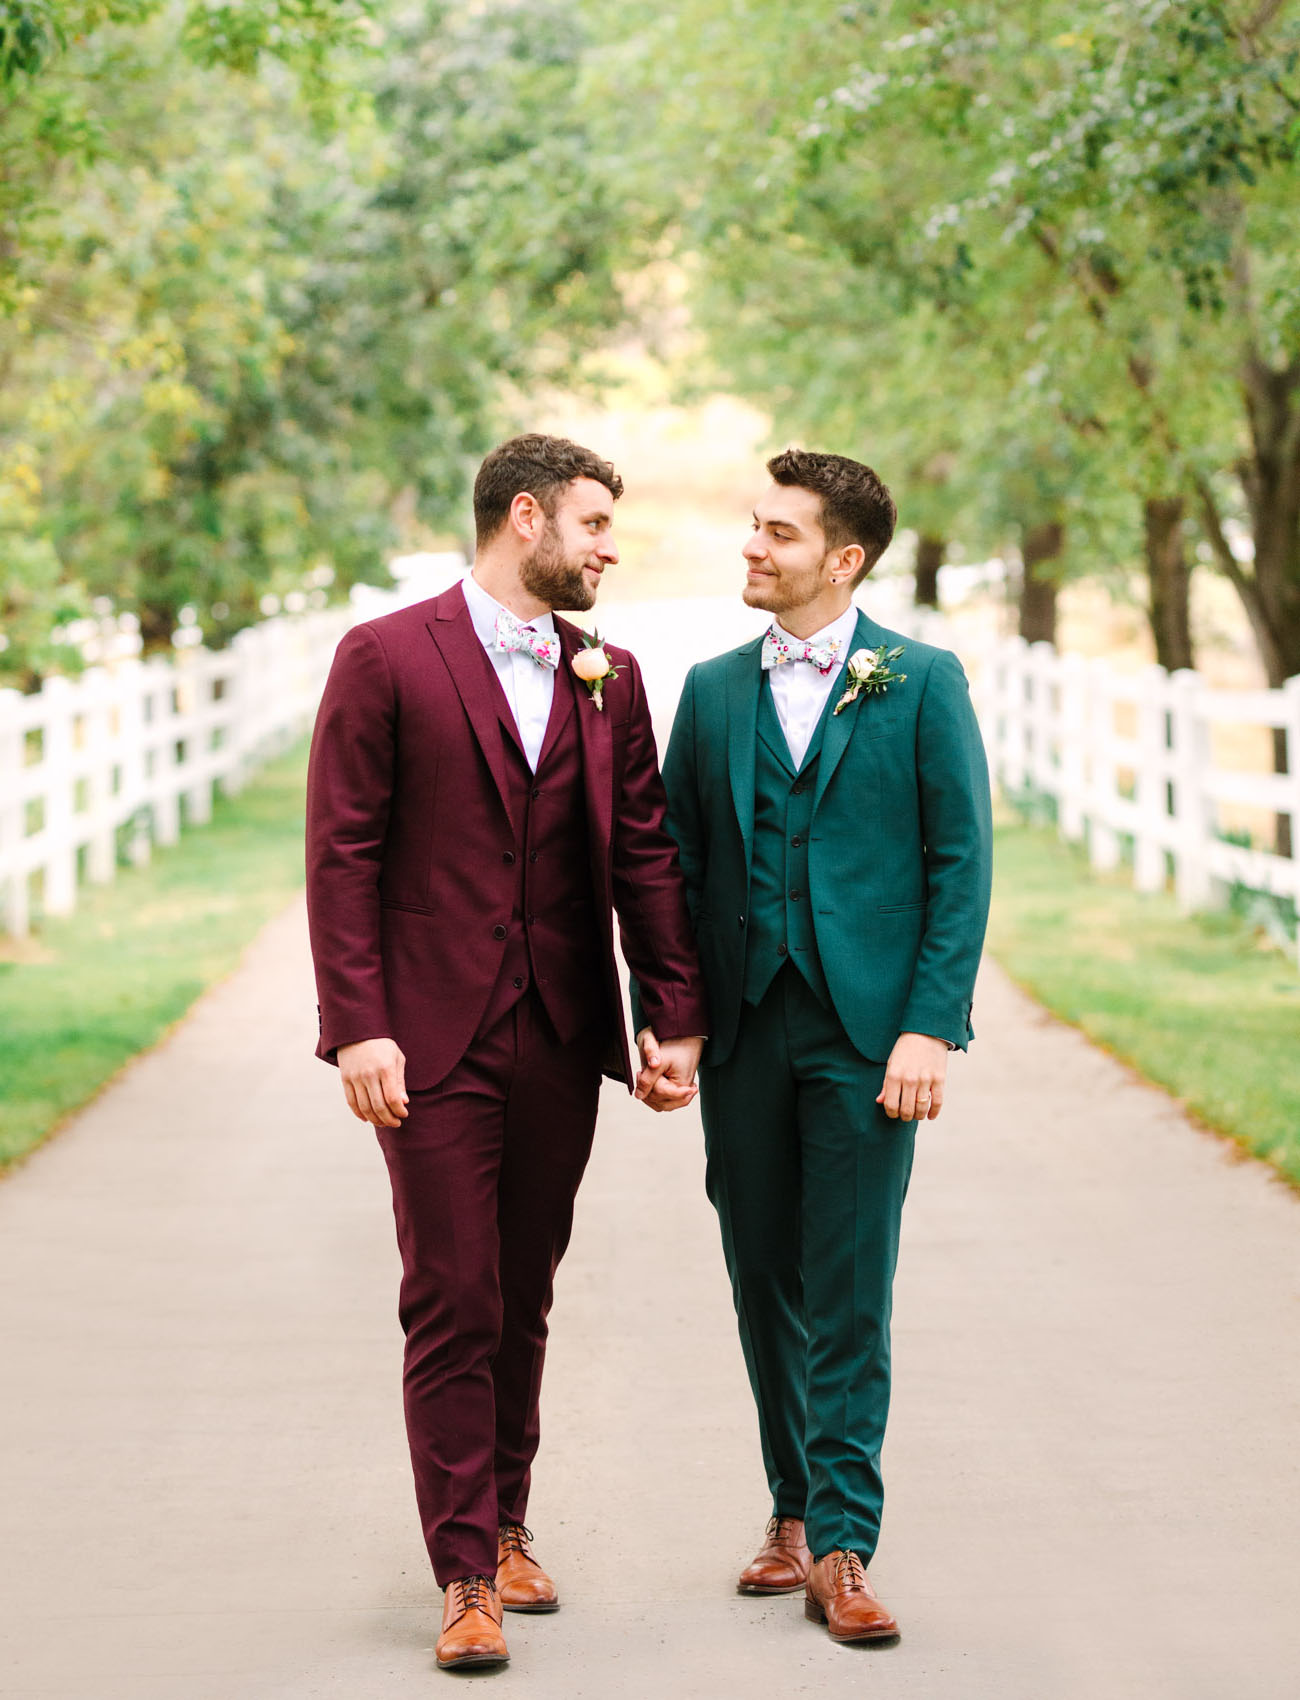 red and green suits